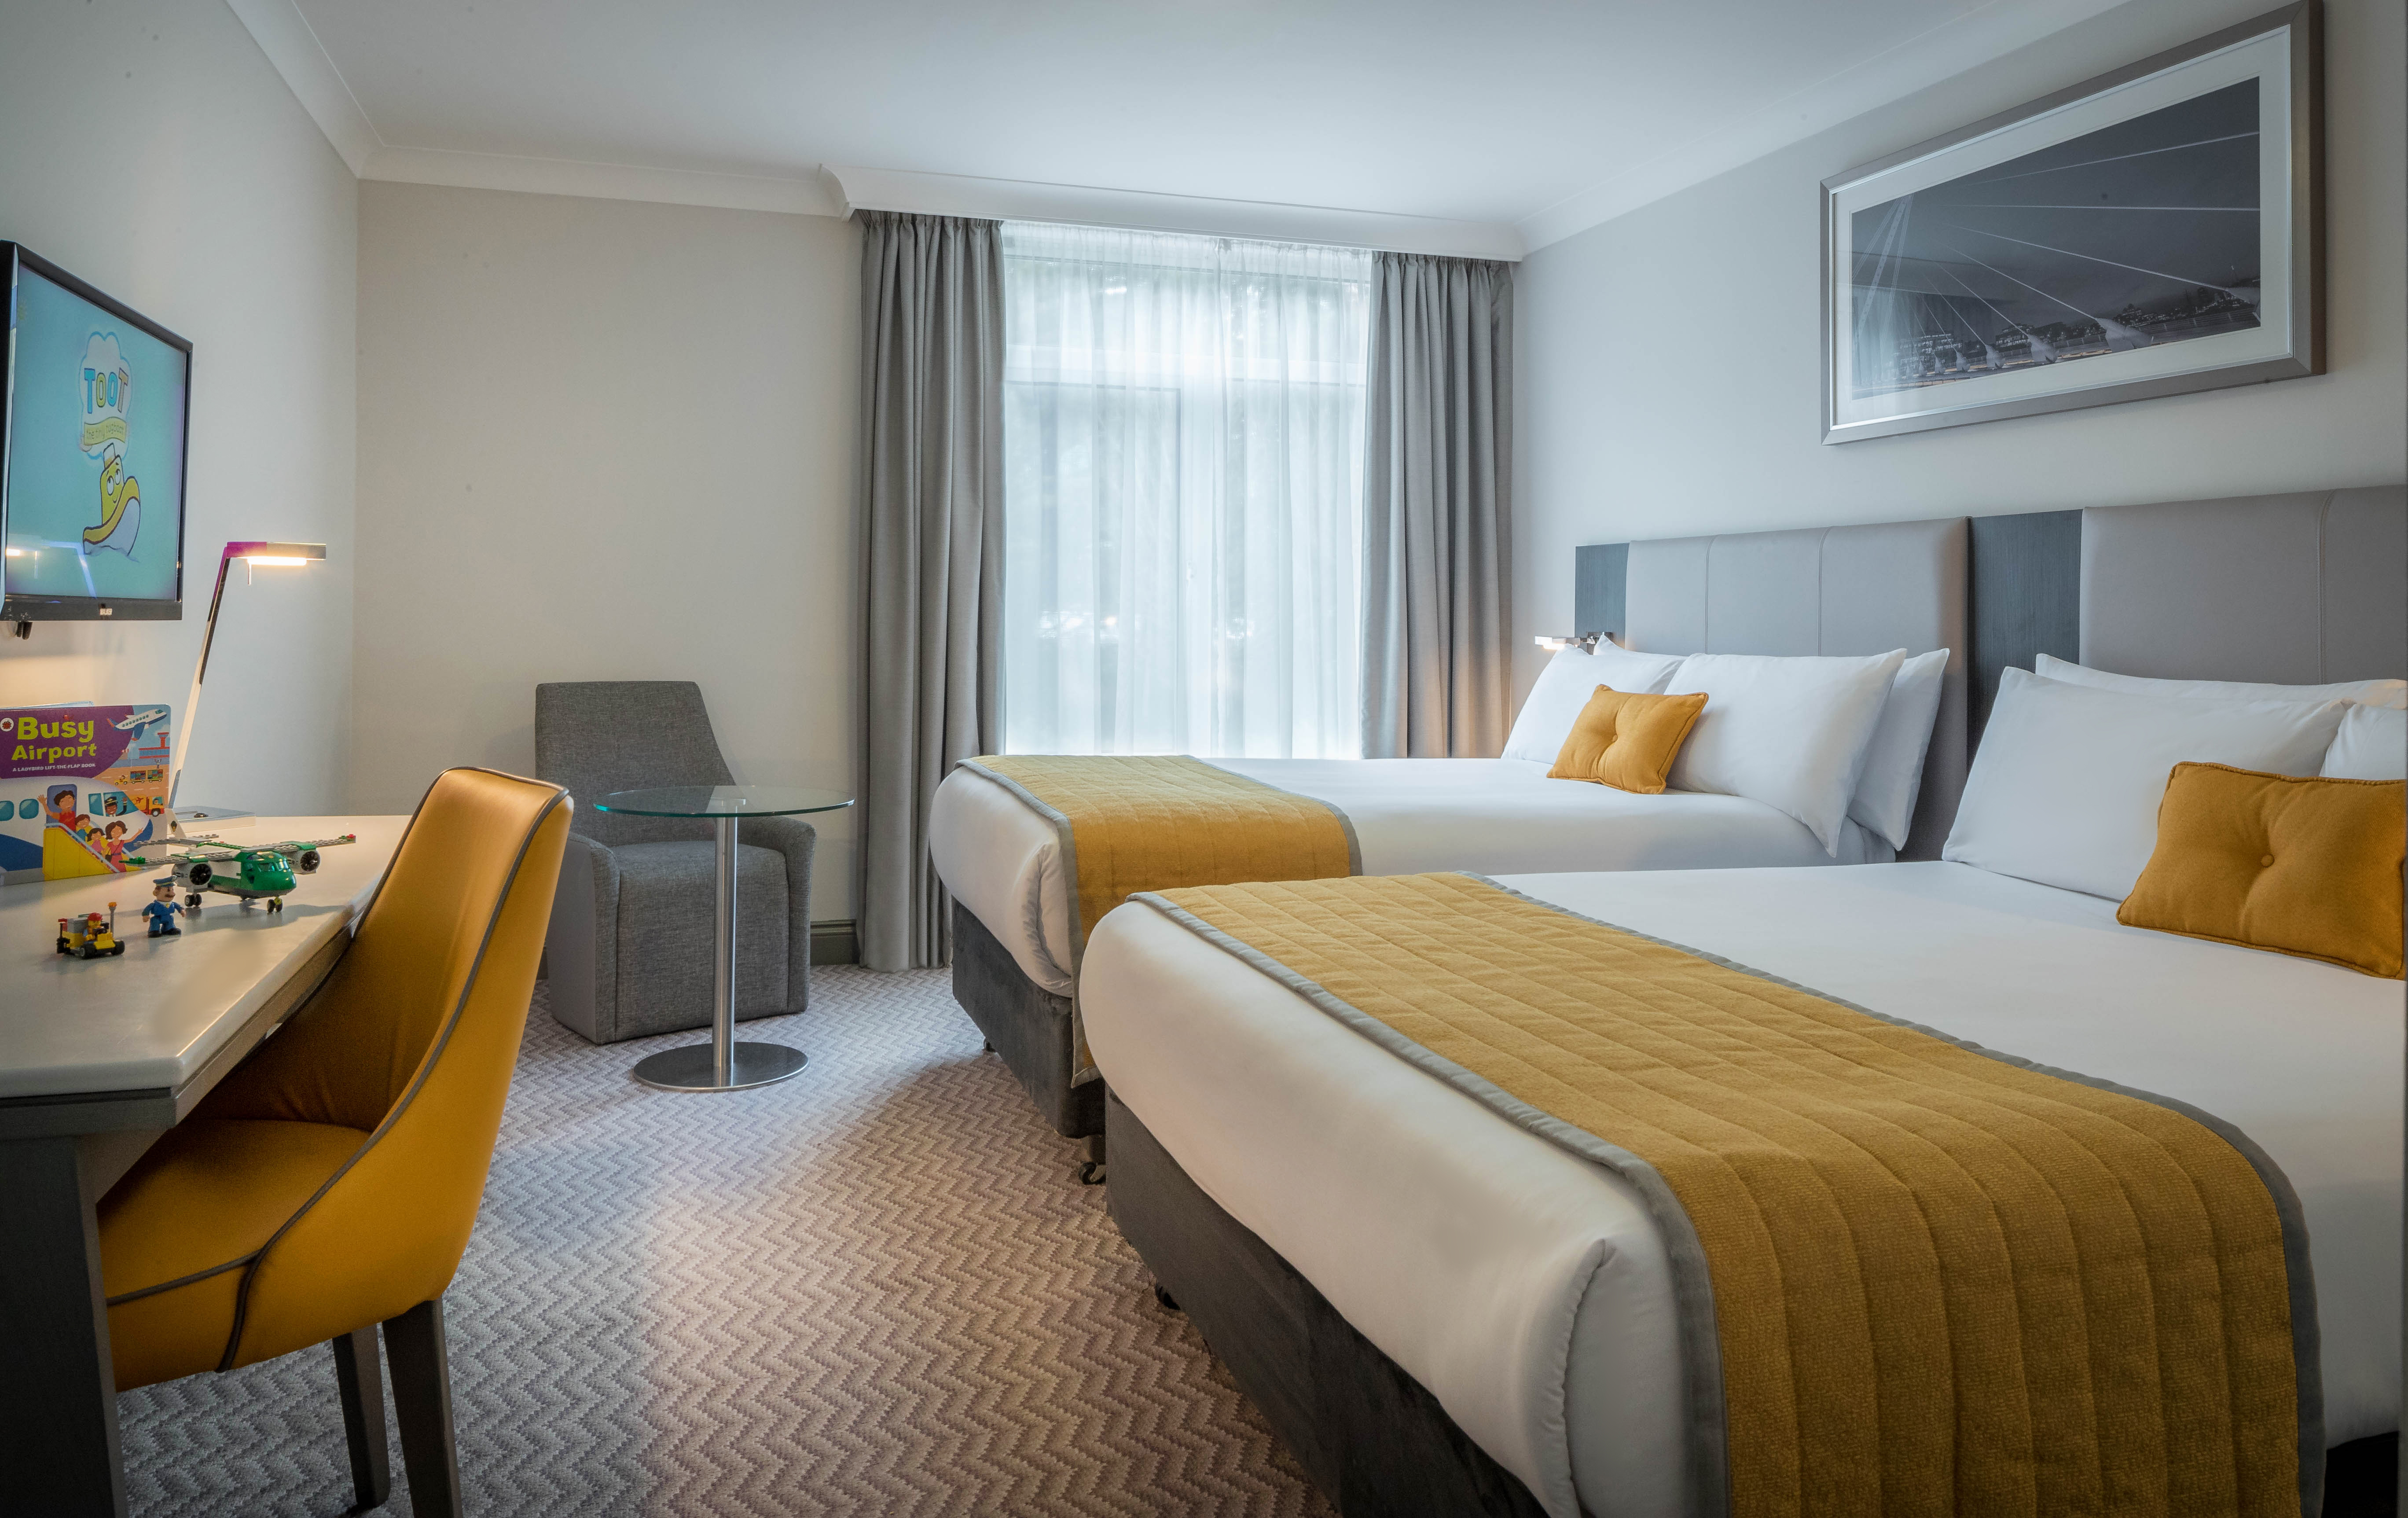 Maldron_Hotel_Dublin_Airport_Family_Room